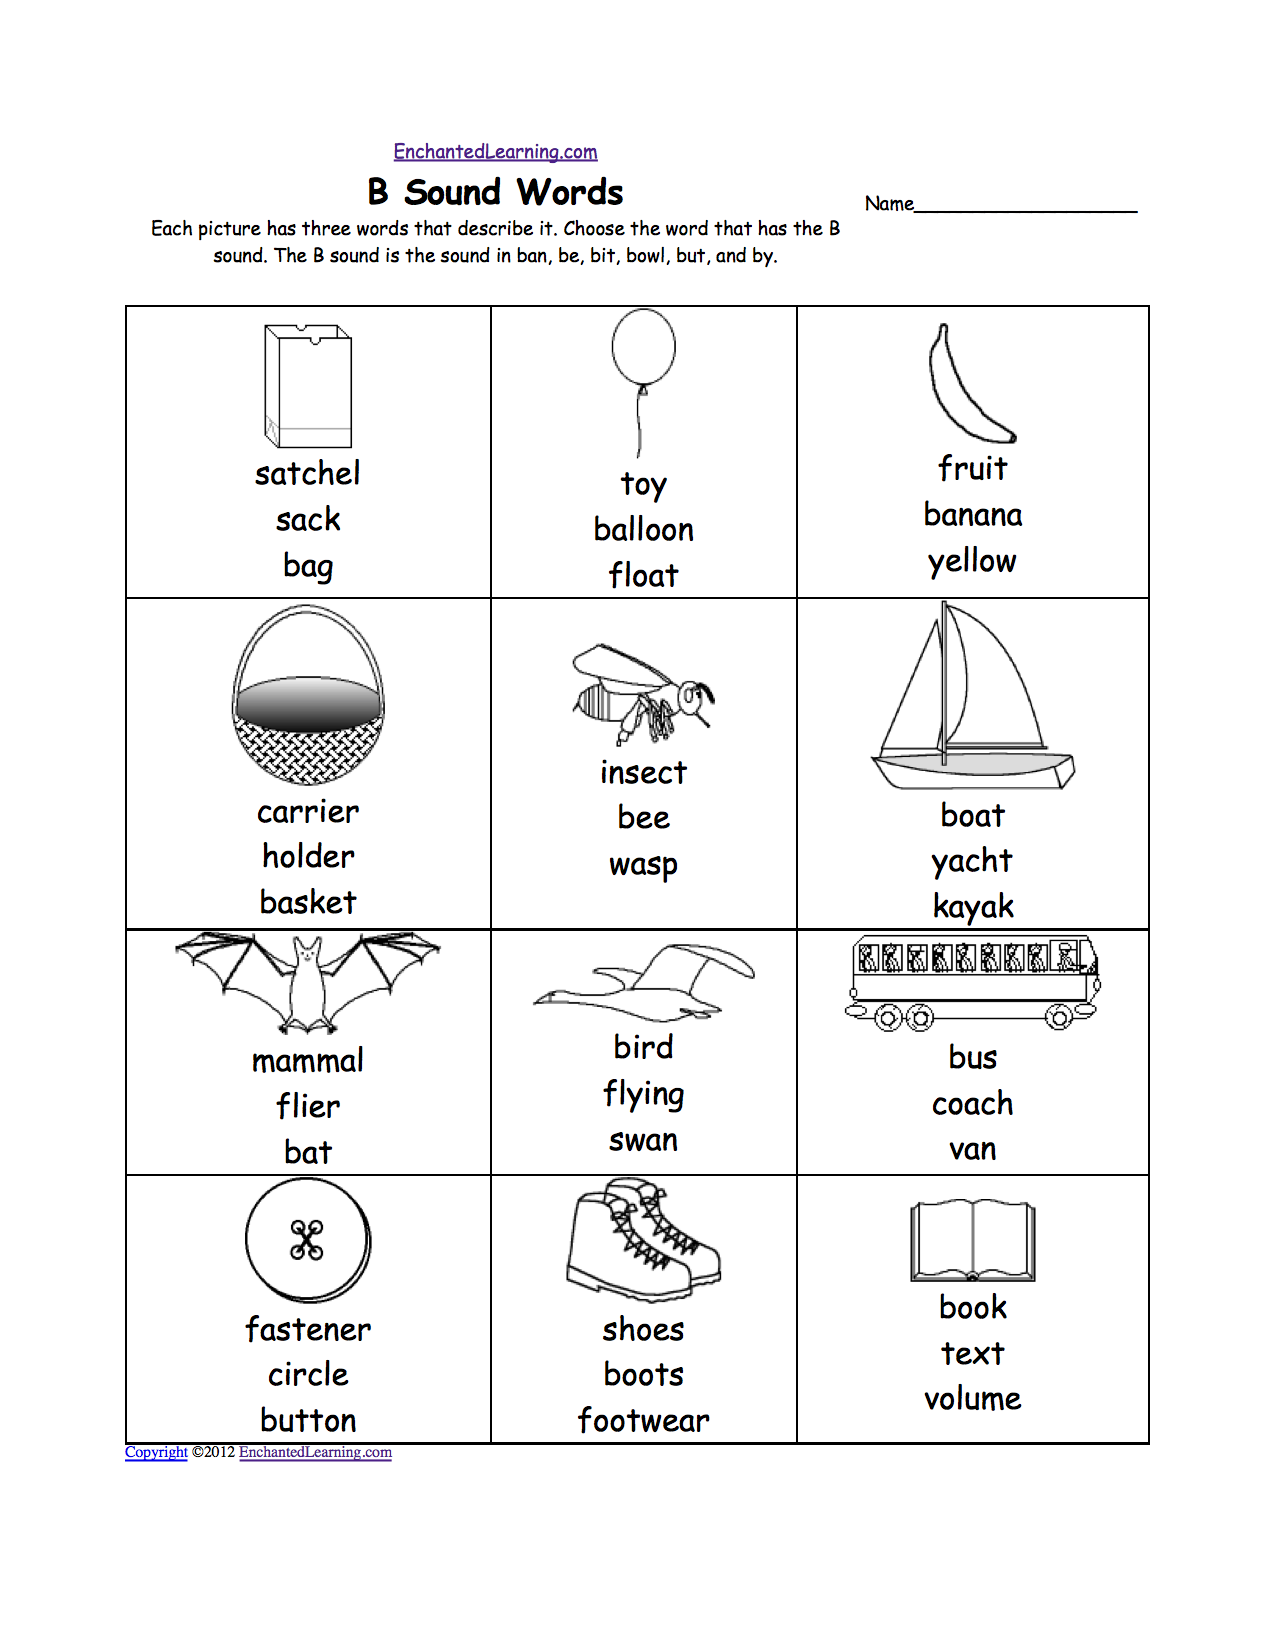 Weirdmailus  Winsome Phonics Worksheets Multiple Choice Worksheets To Print  With Glamorous Quotbquot Sound Phonics Worksheet Multiple Choice Each Picture Has Three Words That Describe It Choose The Word That Has A Quotbquot Sound The Quotbquot Sound Is The Sound  With Beauteous Rd Grade Problem Solving Worksheets Also Systems Of Equations Worksheet With Answers In Addition Cup Pint Quart Gallon Worksheet And Proportions Practice Worksheet As Well As First Grade Literacy Worksheets Additionally Free Multiplication And Division Worksheets From Enchantedlearningcom With Weirdmailus  Glamorous Phonics Worksheets Multiple Choice Worksheets To Print  With Beauteous Quotbquot Sound Phonics Worksheet Multiple Choice Each Picture Has Three Words That Describe It Choose The Word That Has A Quotbquot Sound The Quotbquot Sound Is The Sound  And Winsome Rd Grade Problem Solving Worksheets Also Systems Of Equations Worksheet With Answers In Addition Cup Pint Quart Gallon Worksheet From Enchantedlearningcom